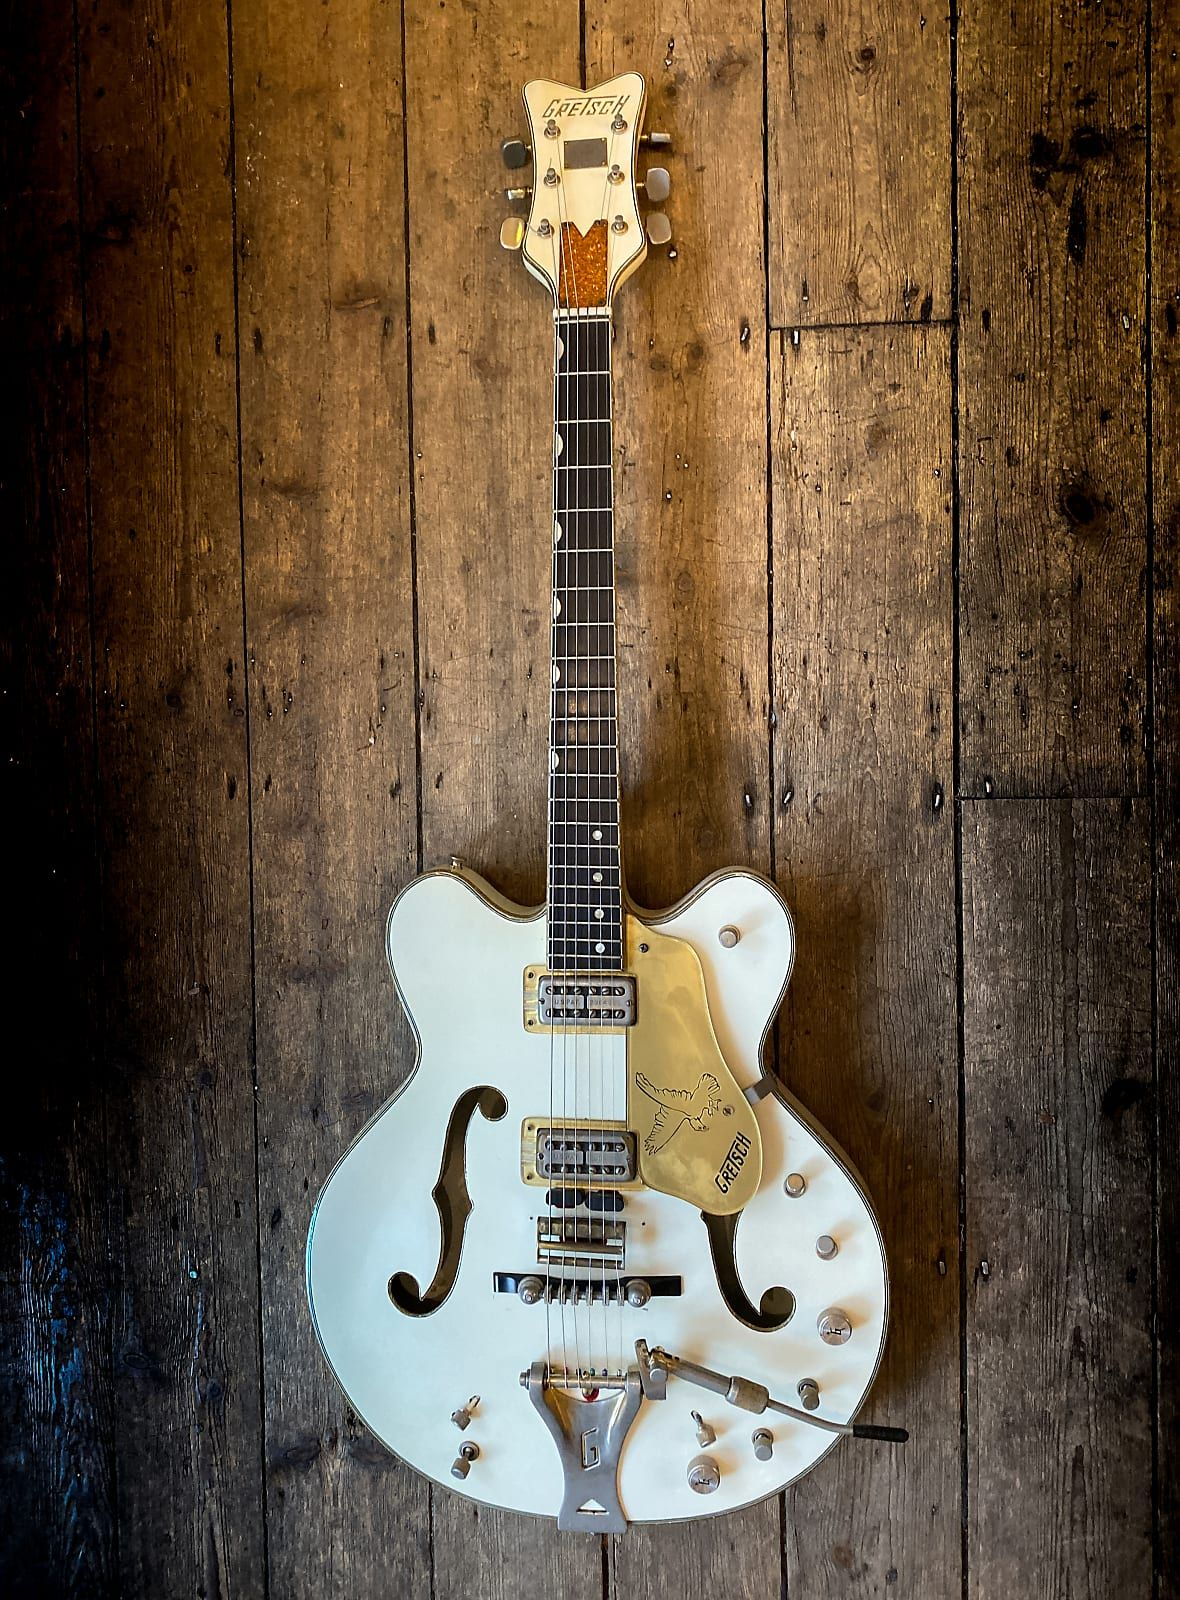 1970 Gretsch White Falcon Double Cutaway Model With Hard Shell Case New Kings Road Vintage Guitar Emporium Reverb In 2021 Gretsch Vintage Guitars White Falcon